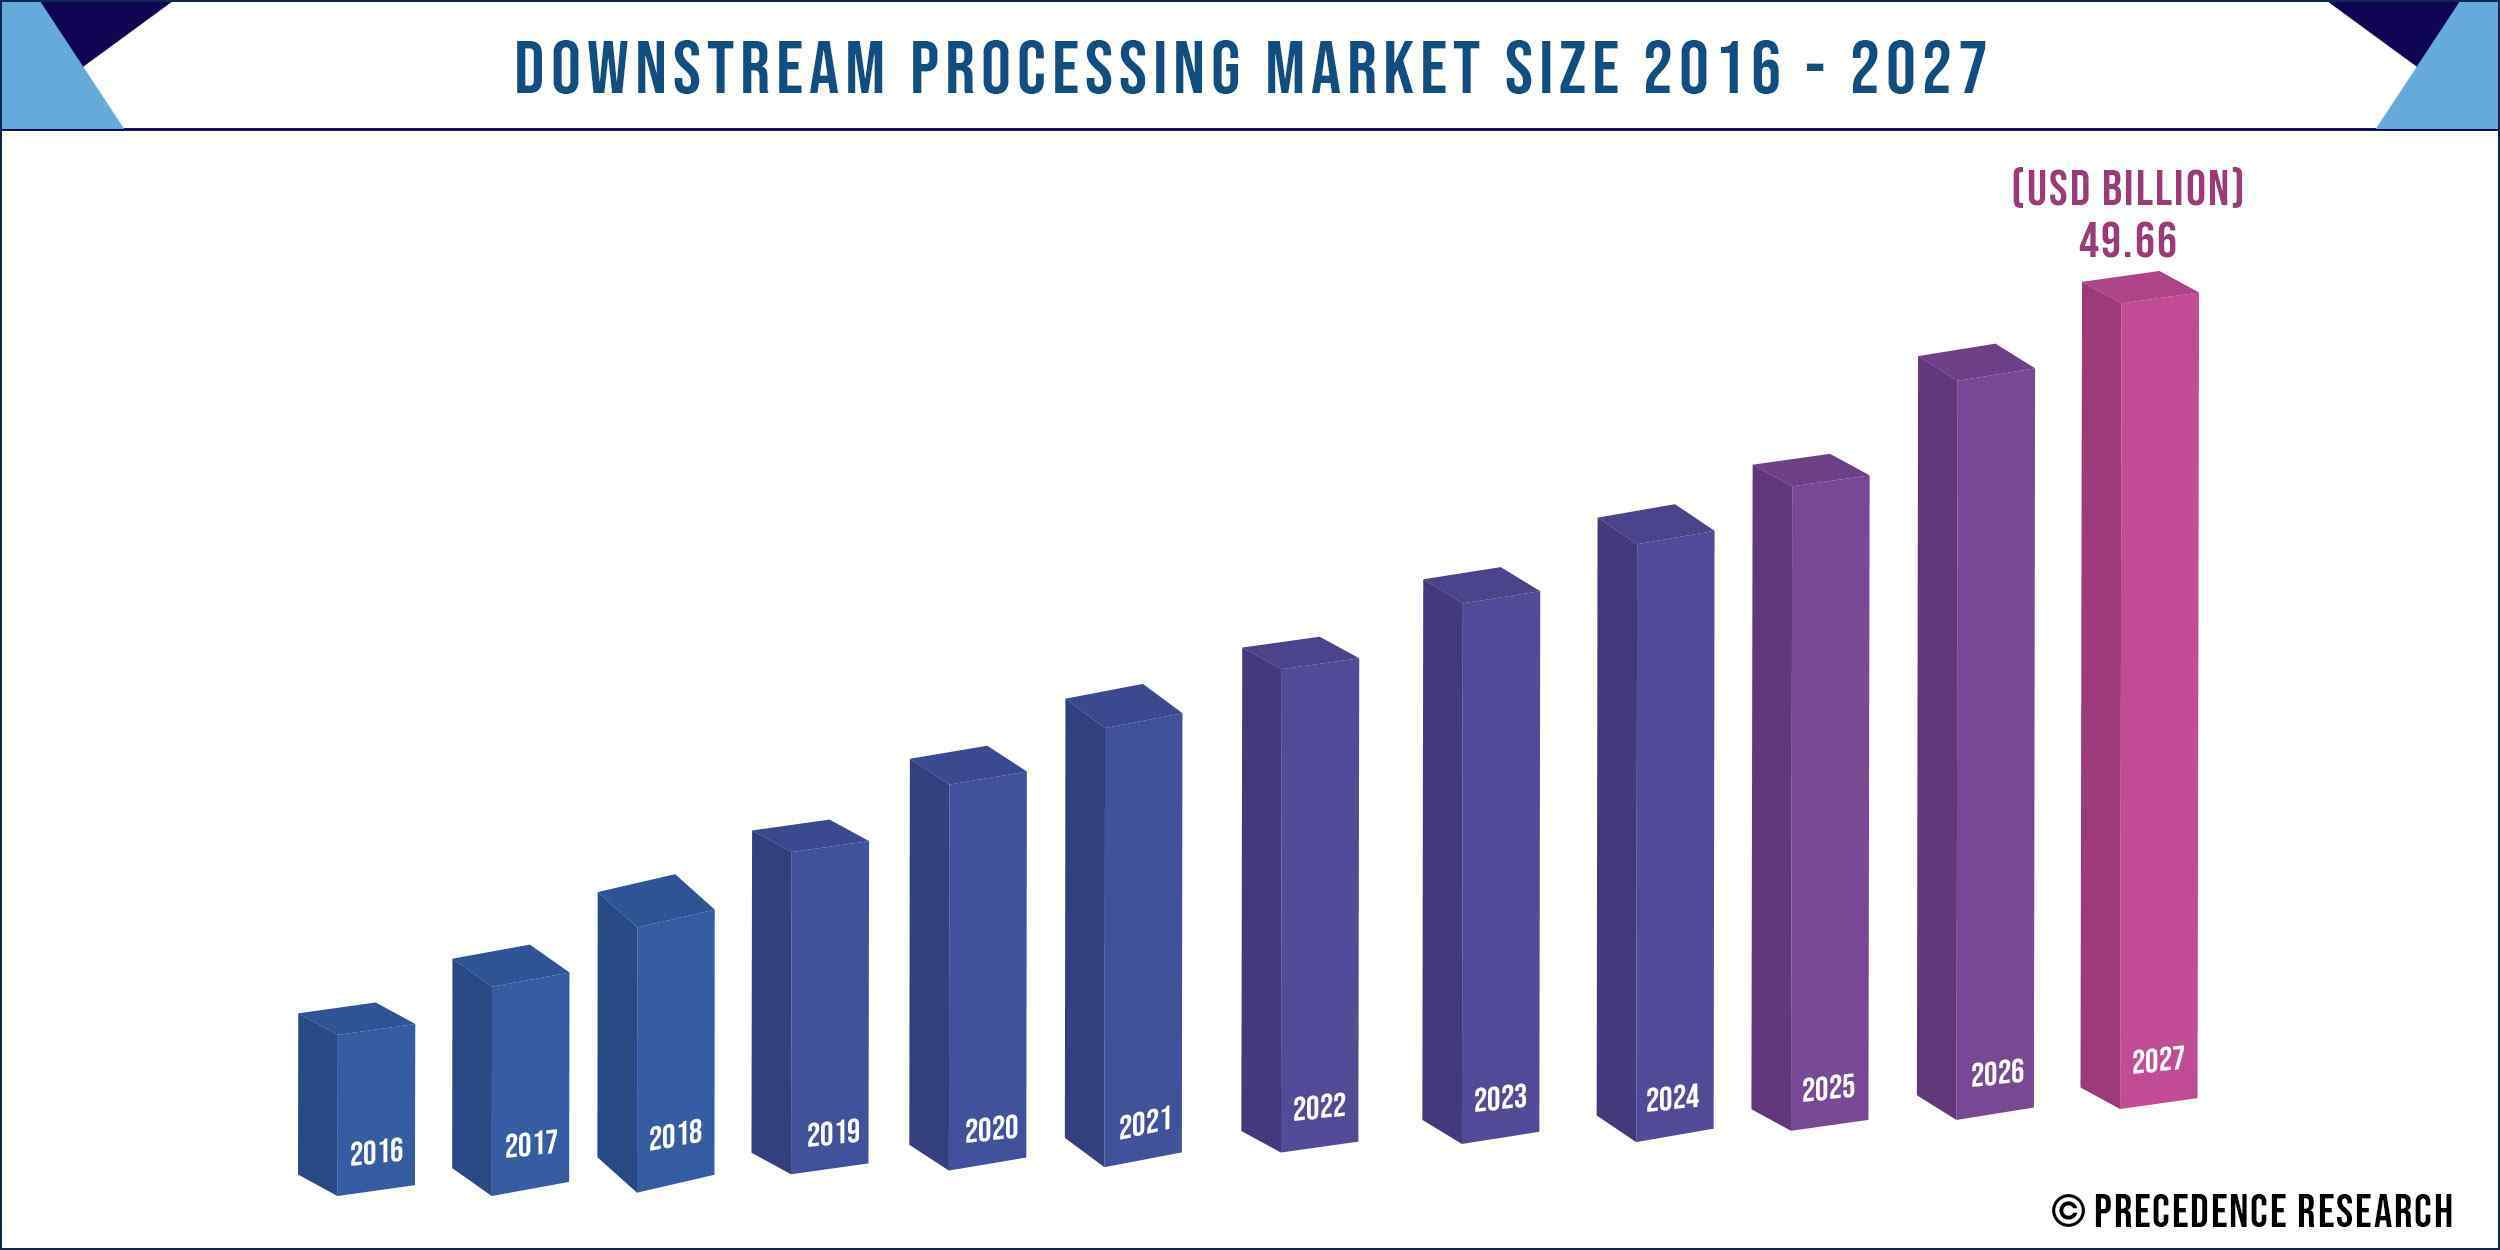 Downstream Processing Market Size 2016 to 2027